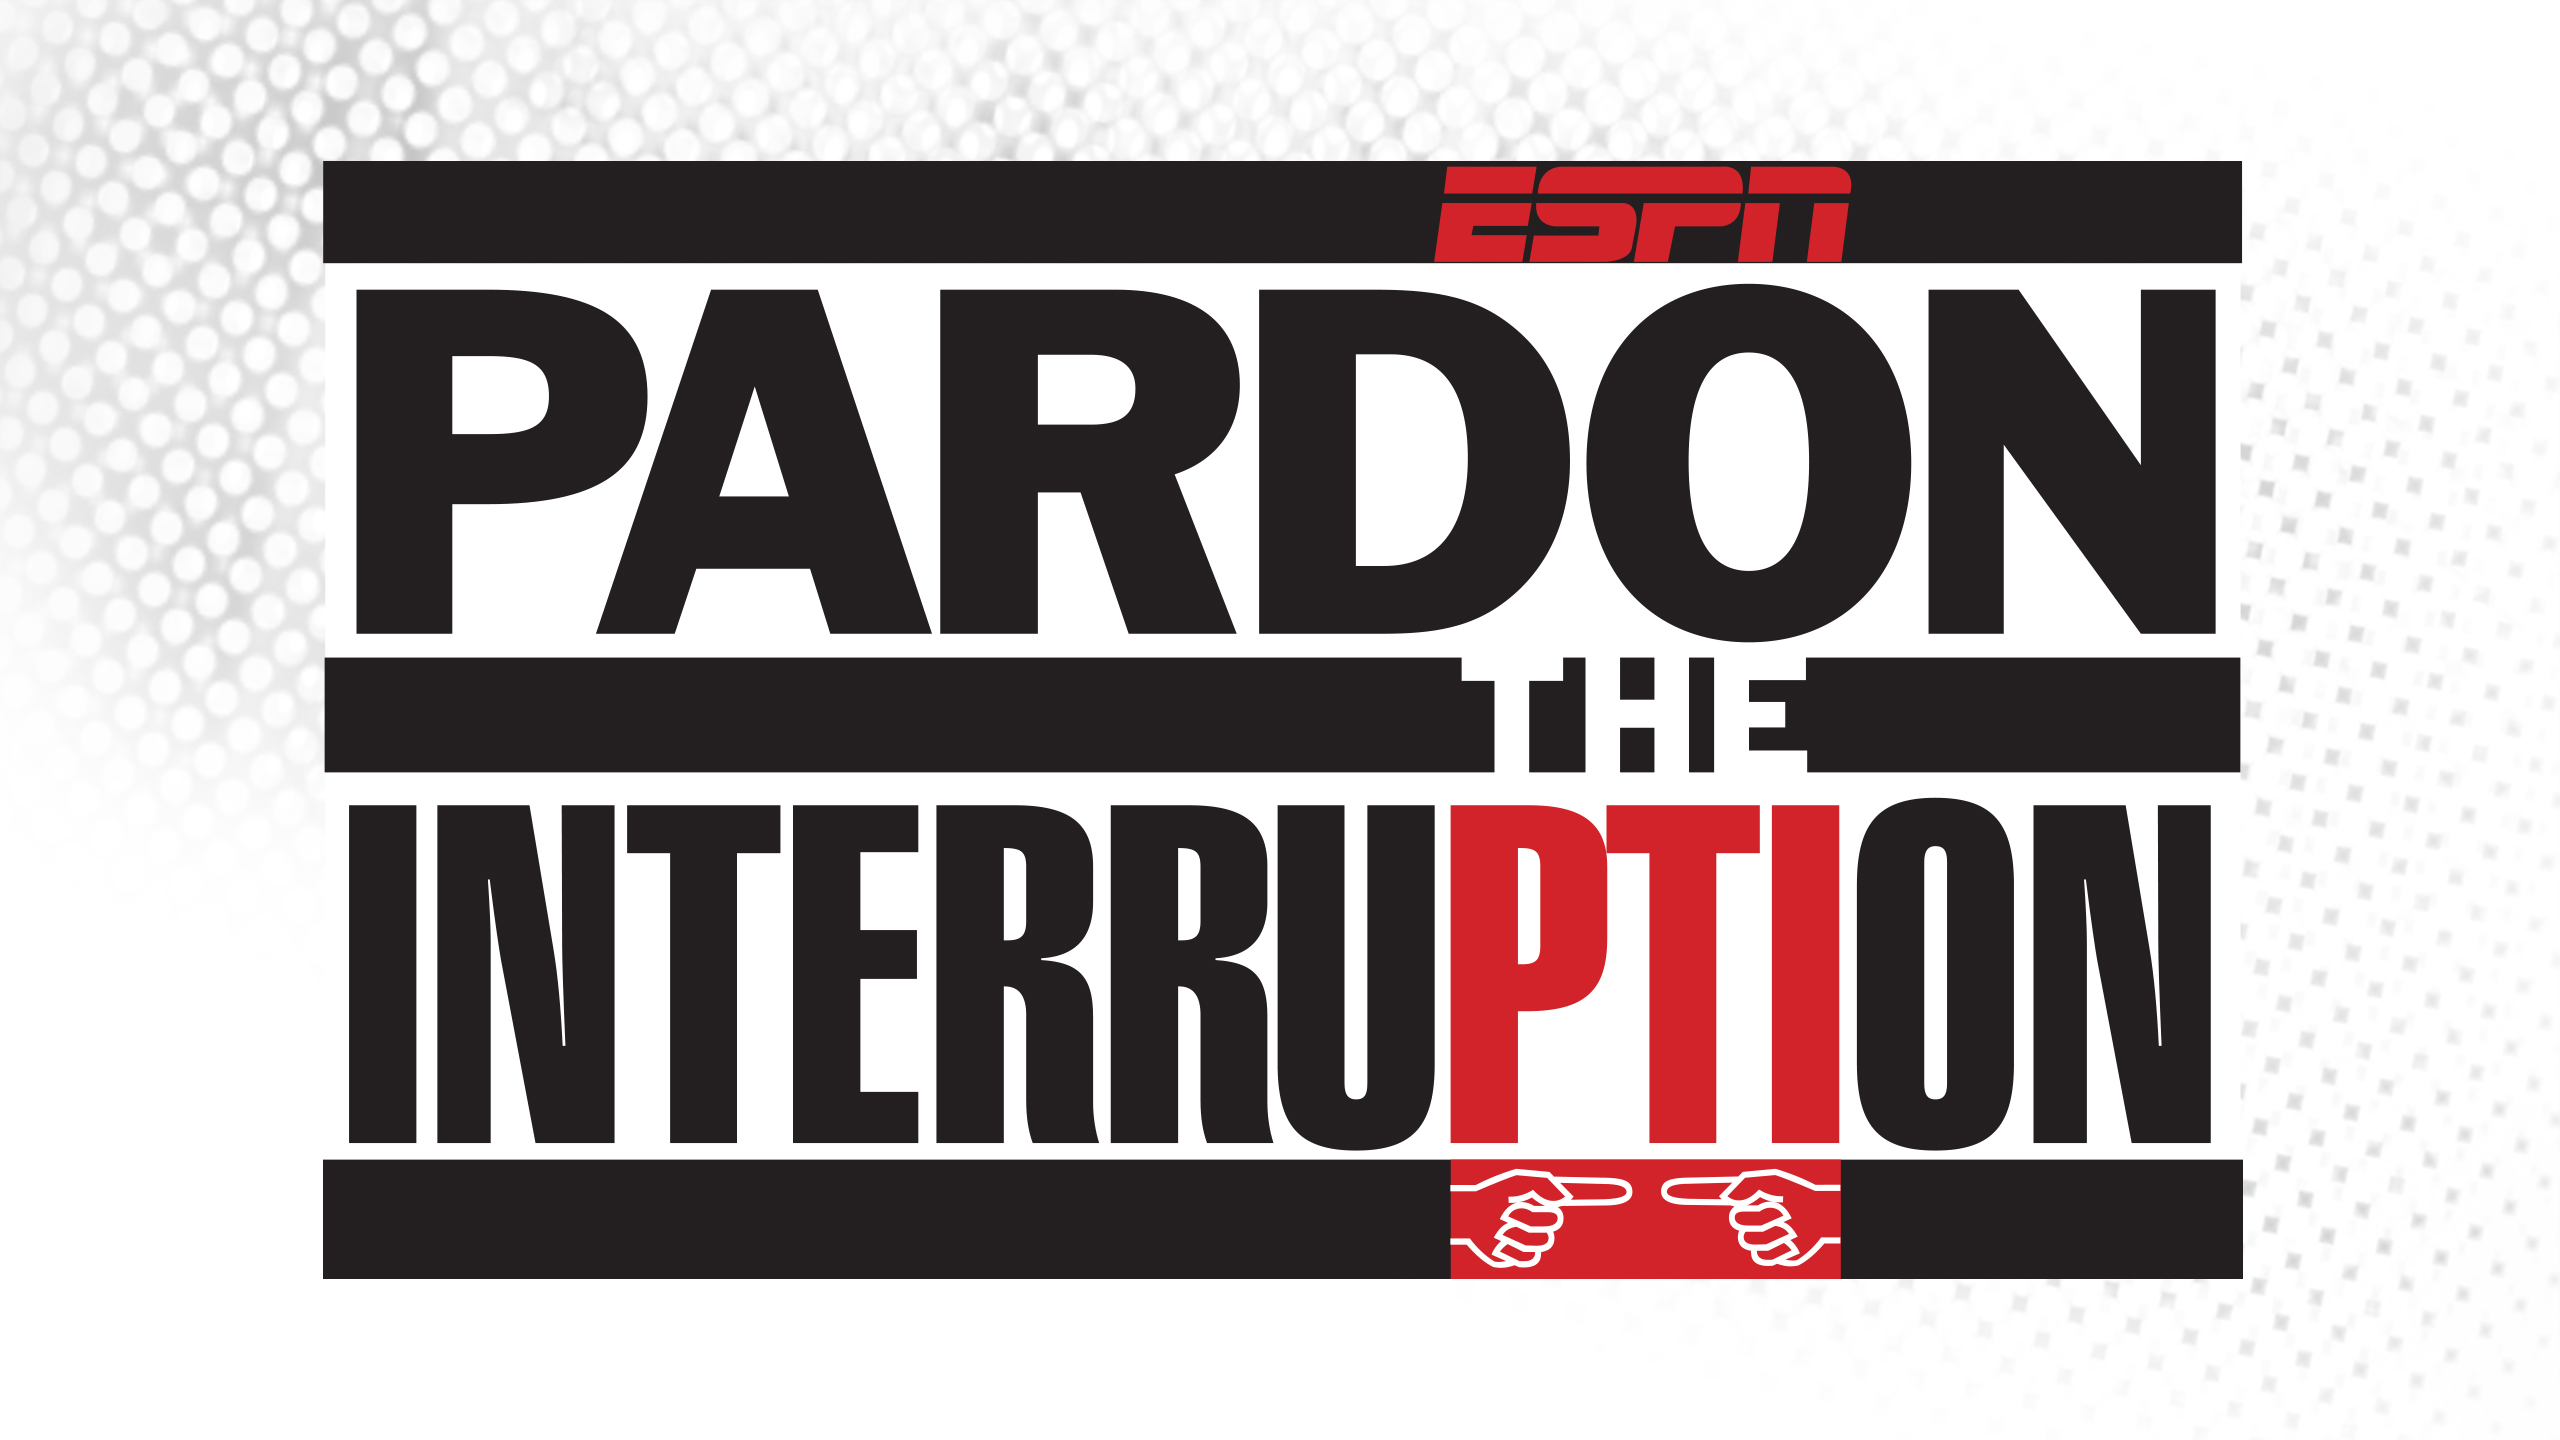 Wed, 12/12 - Pardon The Interruption